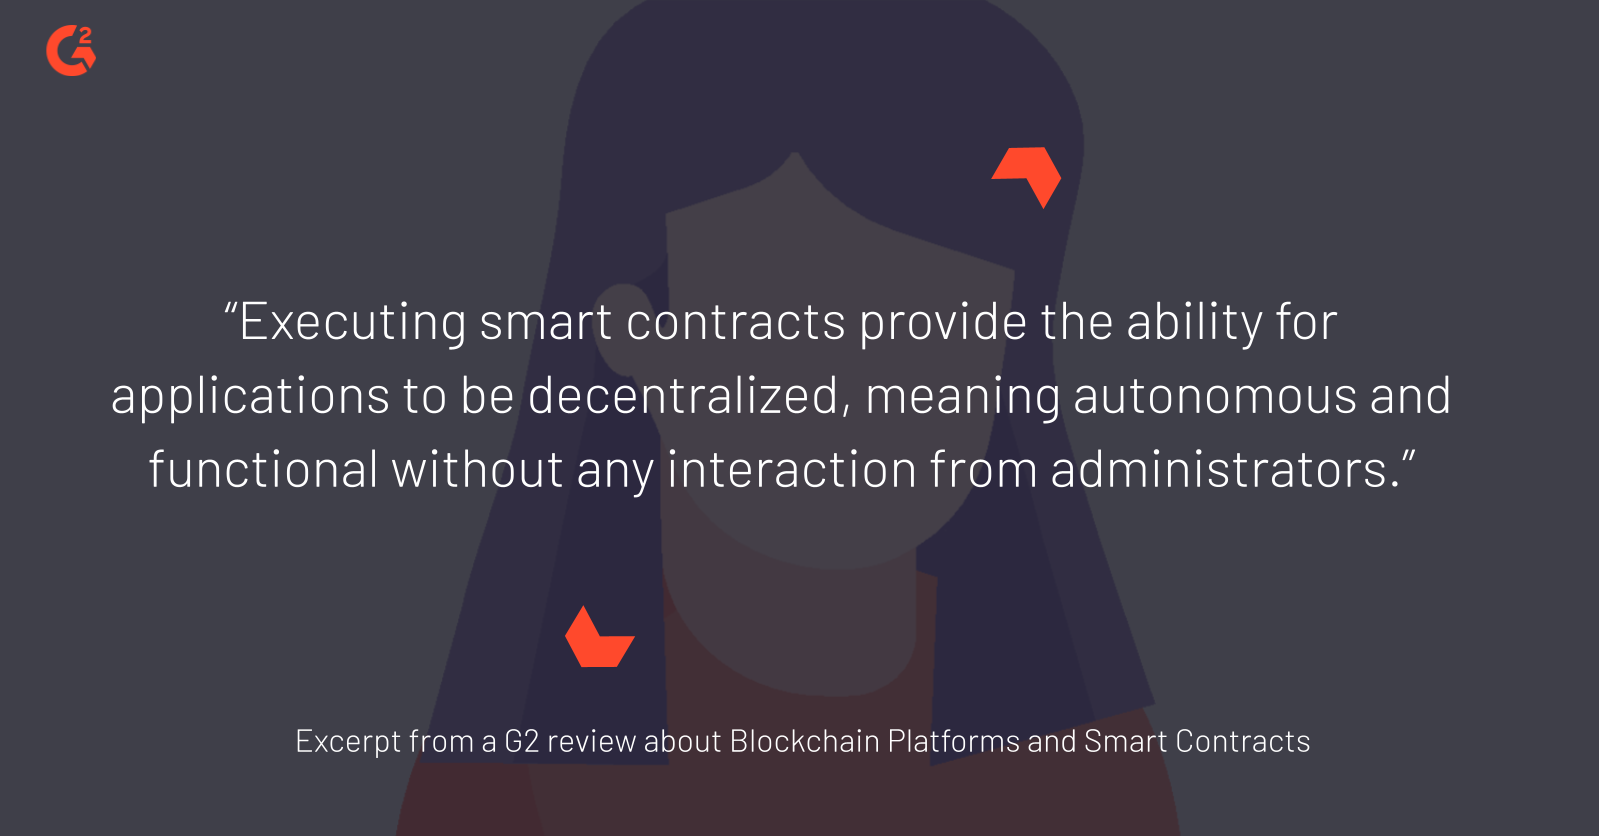 Excerpt from a G2 review about blockchain